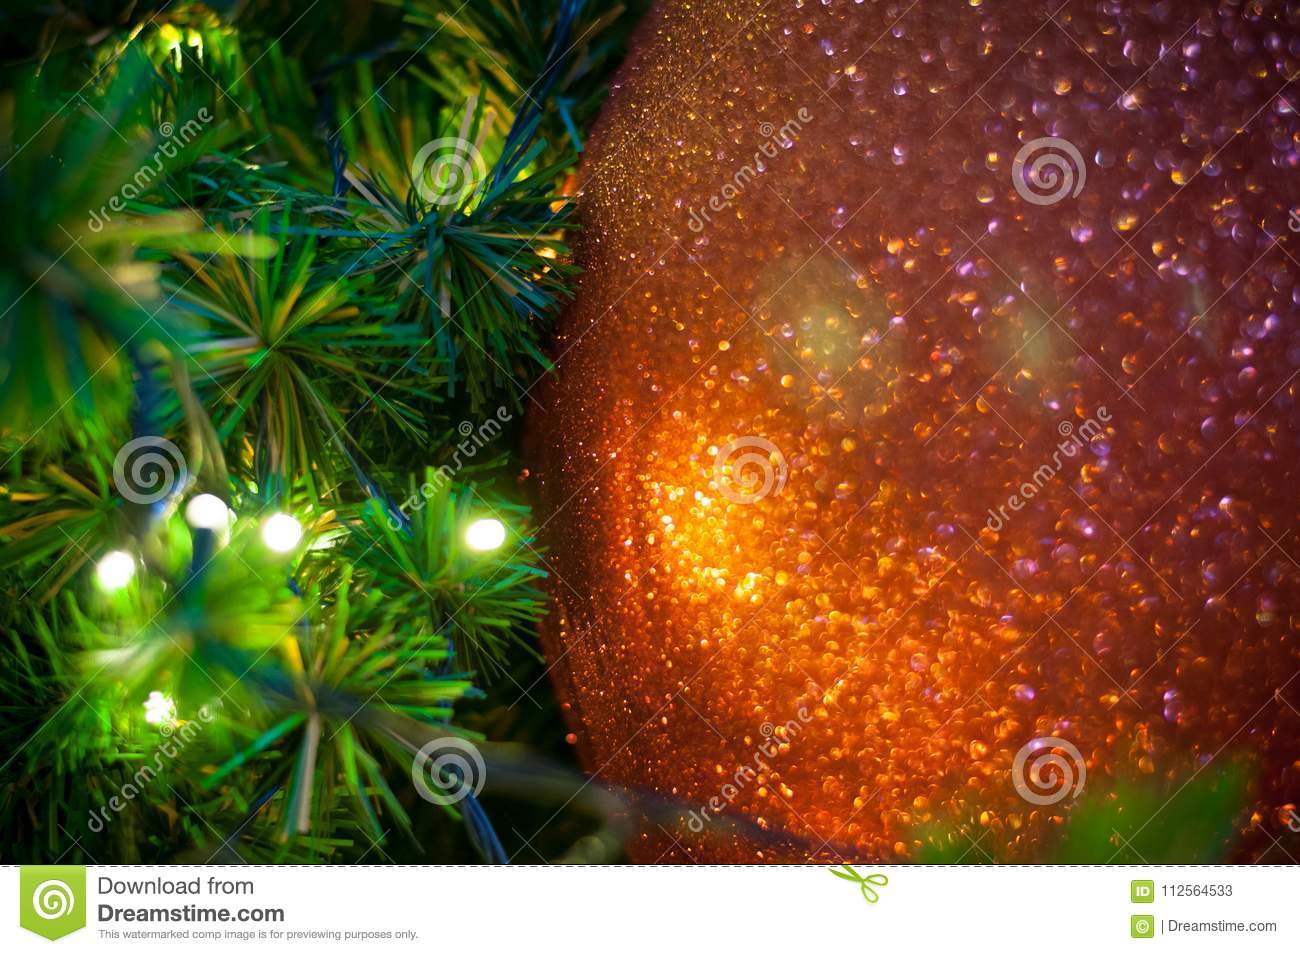 download close up big red glitter ball christmas on tree with wire white light background stock